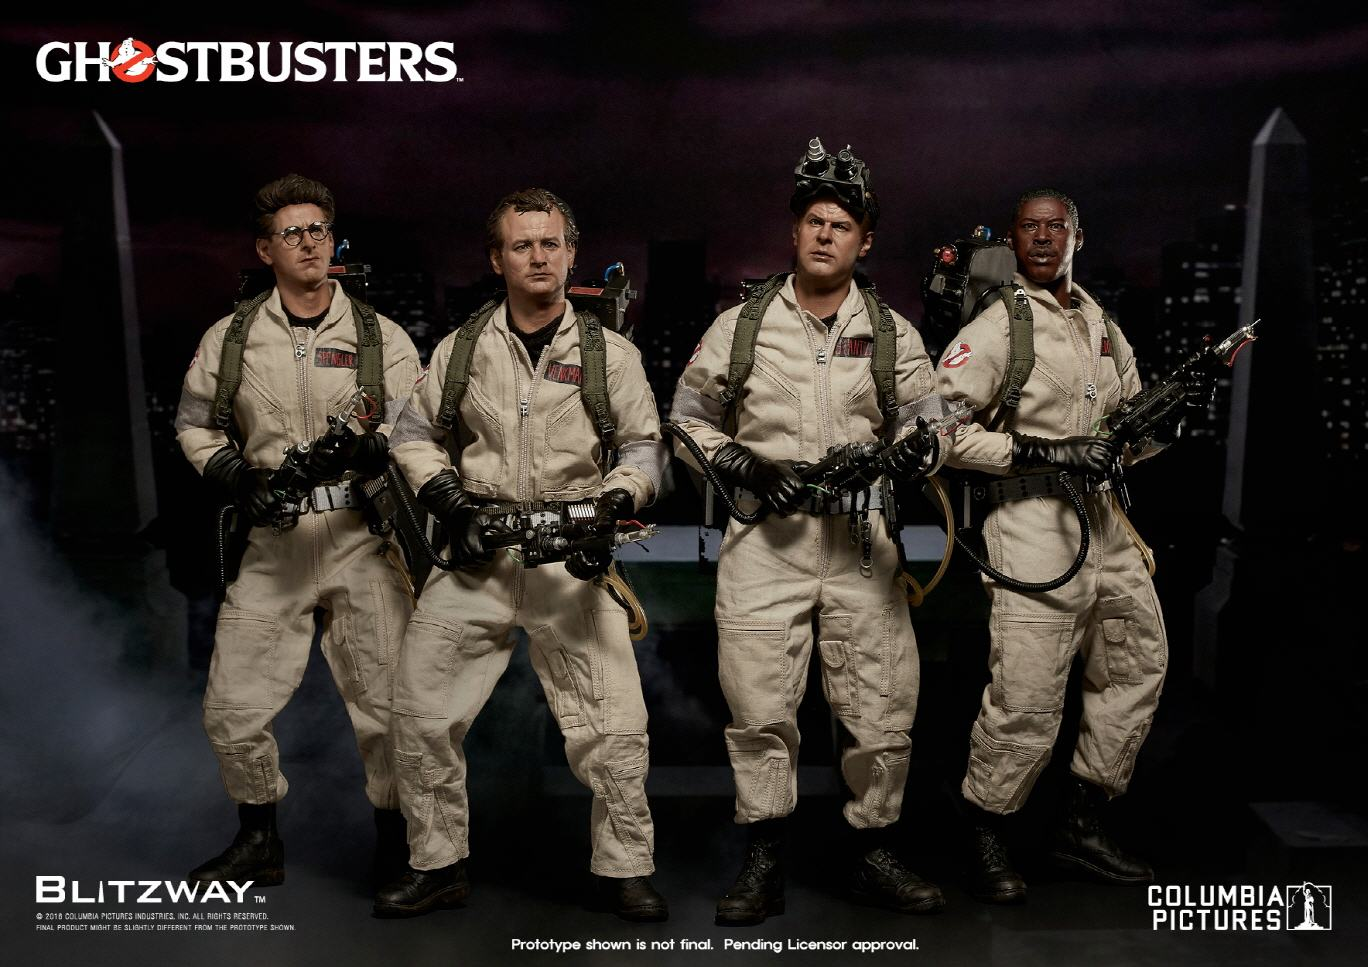 Ghostbusters-Action-Figures-Escala-1-6-Bitzway-02